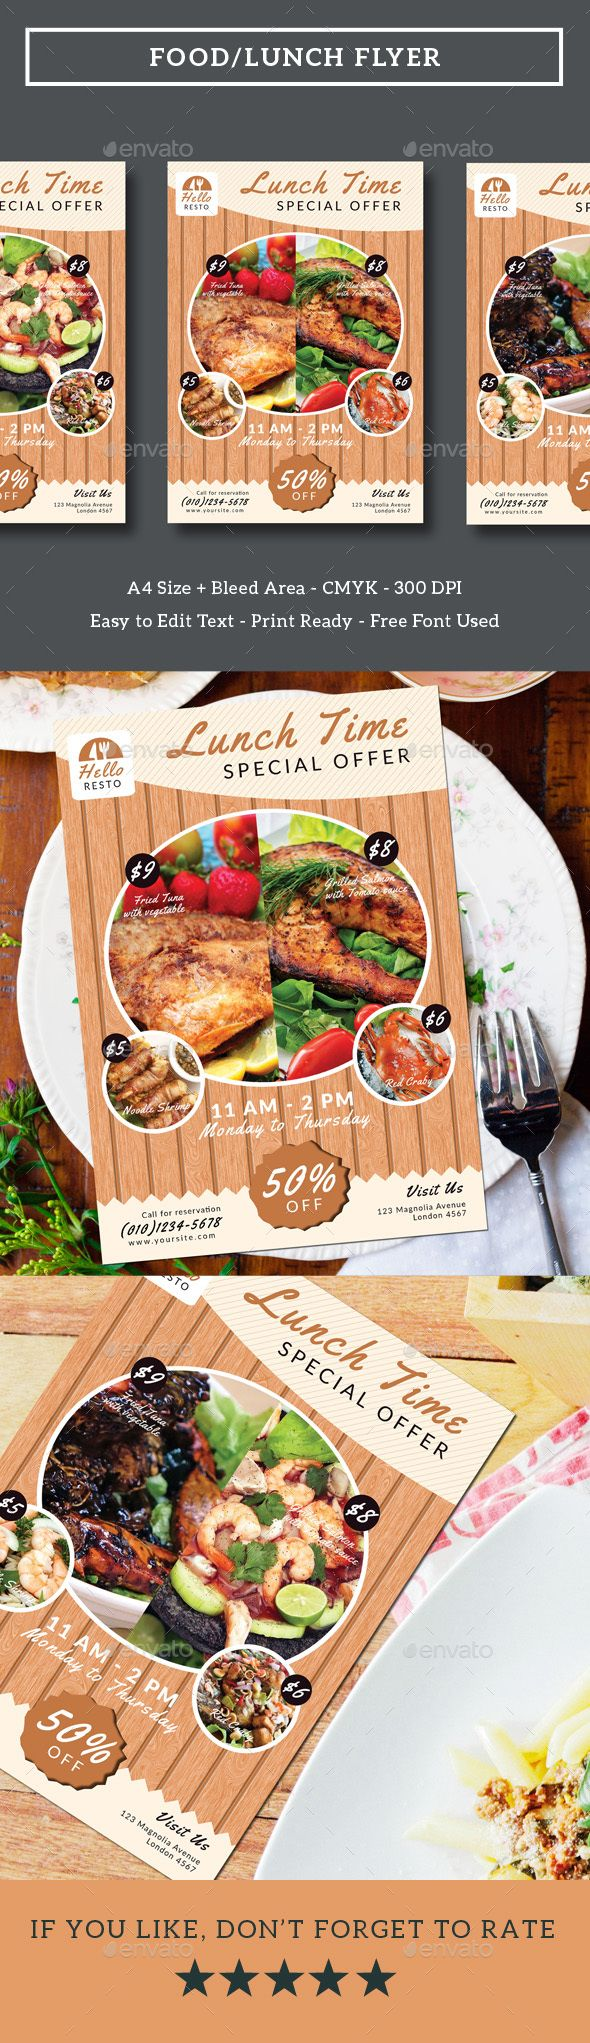 FoodLunch Flyer  Flyer Template Template And Edit Text